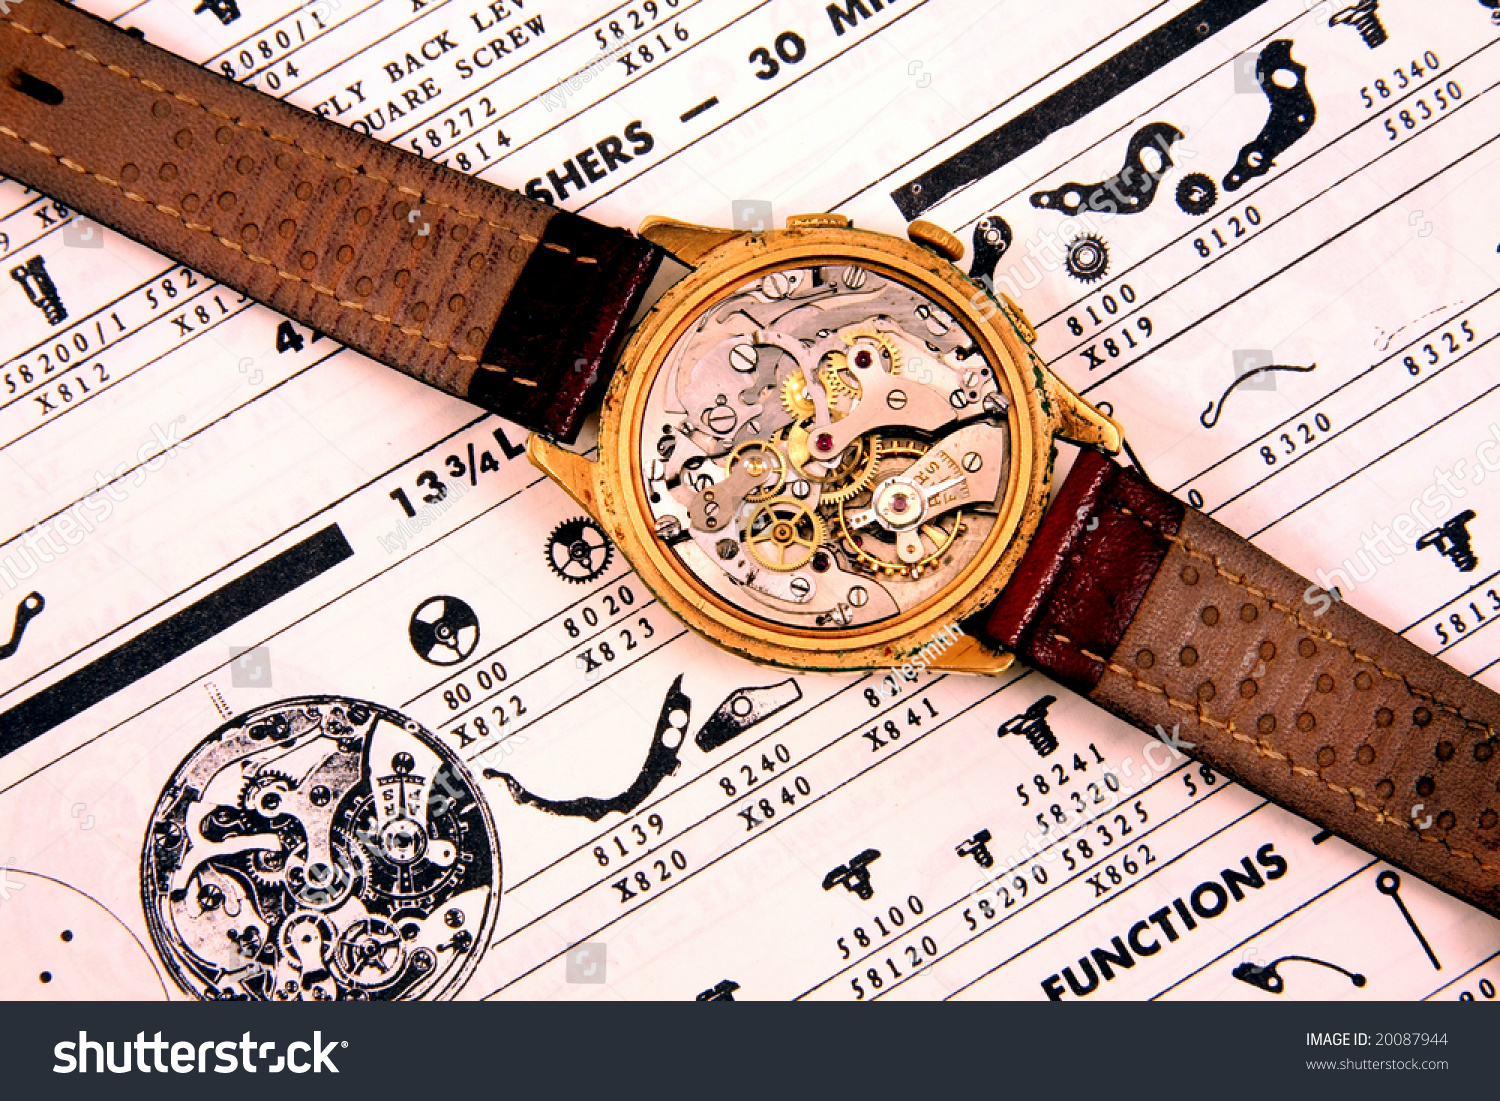 Watch wrist parts - Save To A Lightbox